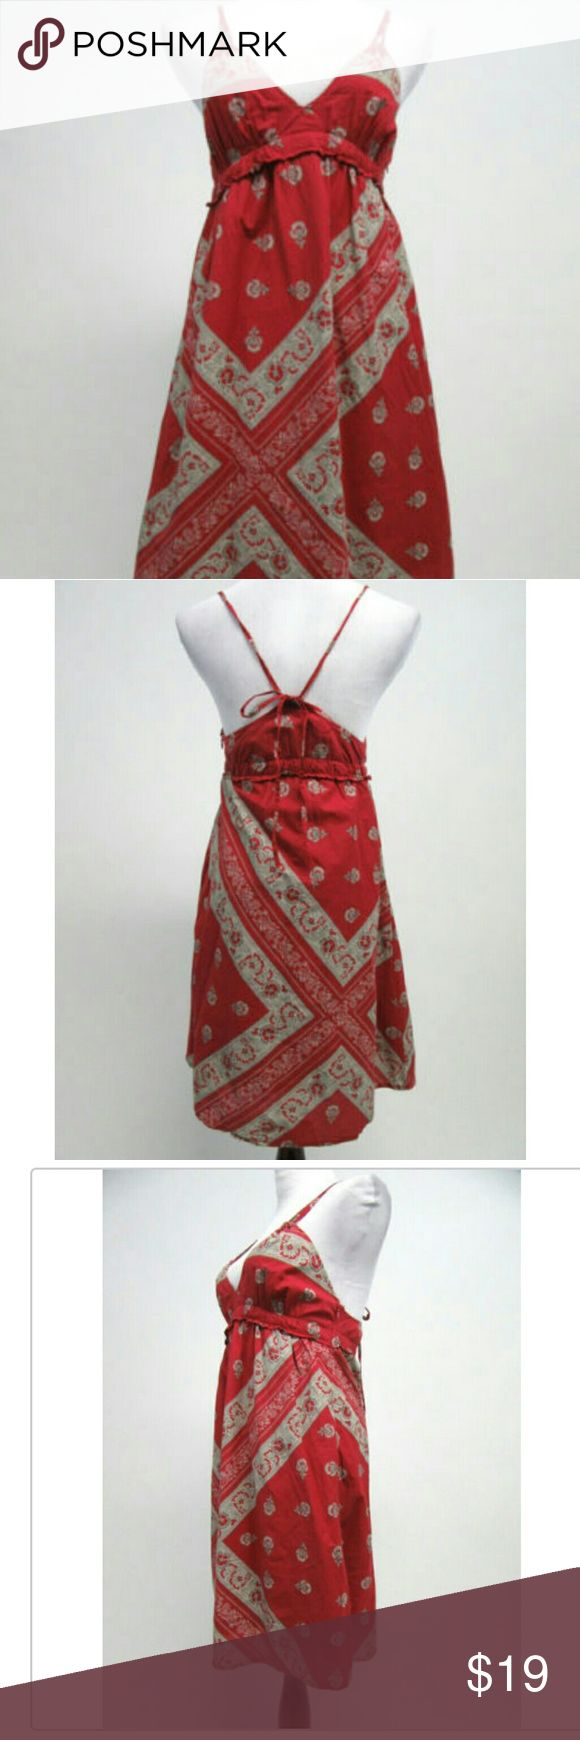 Converse One Star Red Beige Dress Converse One Star Womens Sundress Size Large Red Beige Dress. Made with cotton. Casual. Dress length above knee, mini, spaghetti straps. Converse One Star Dresses